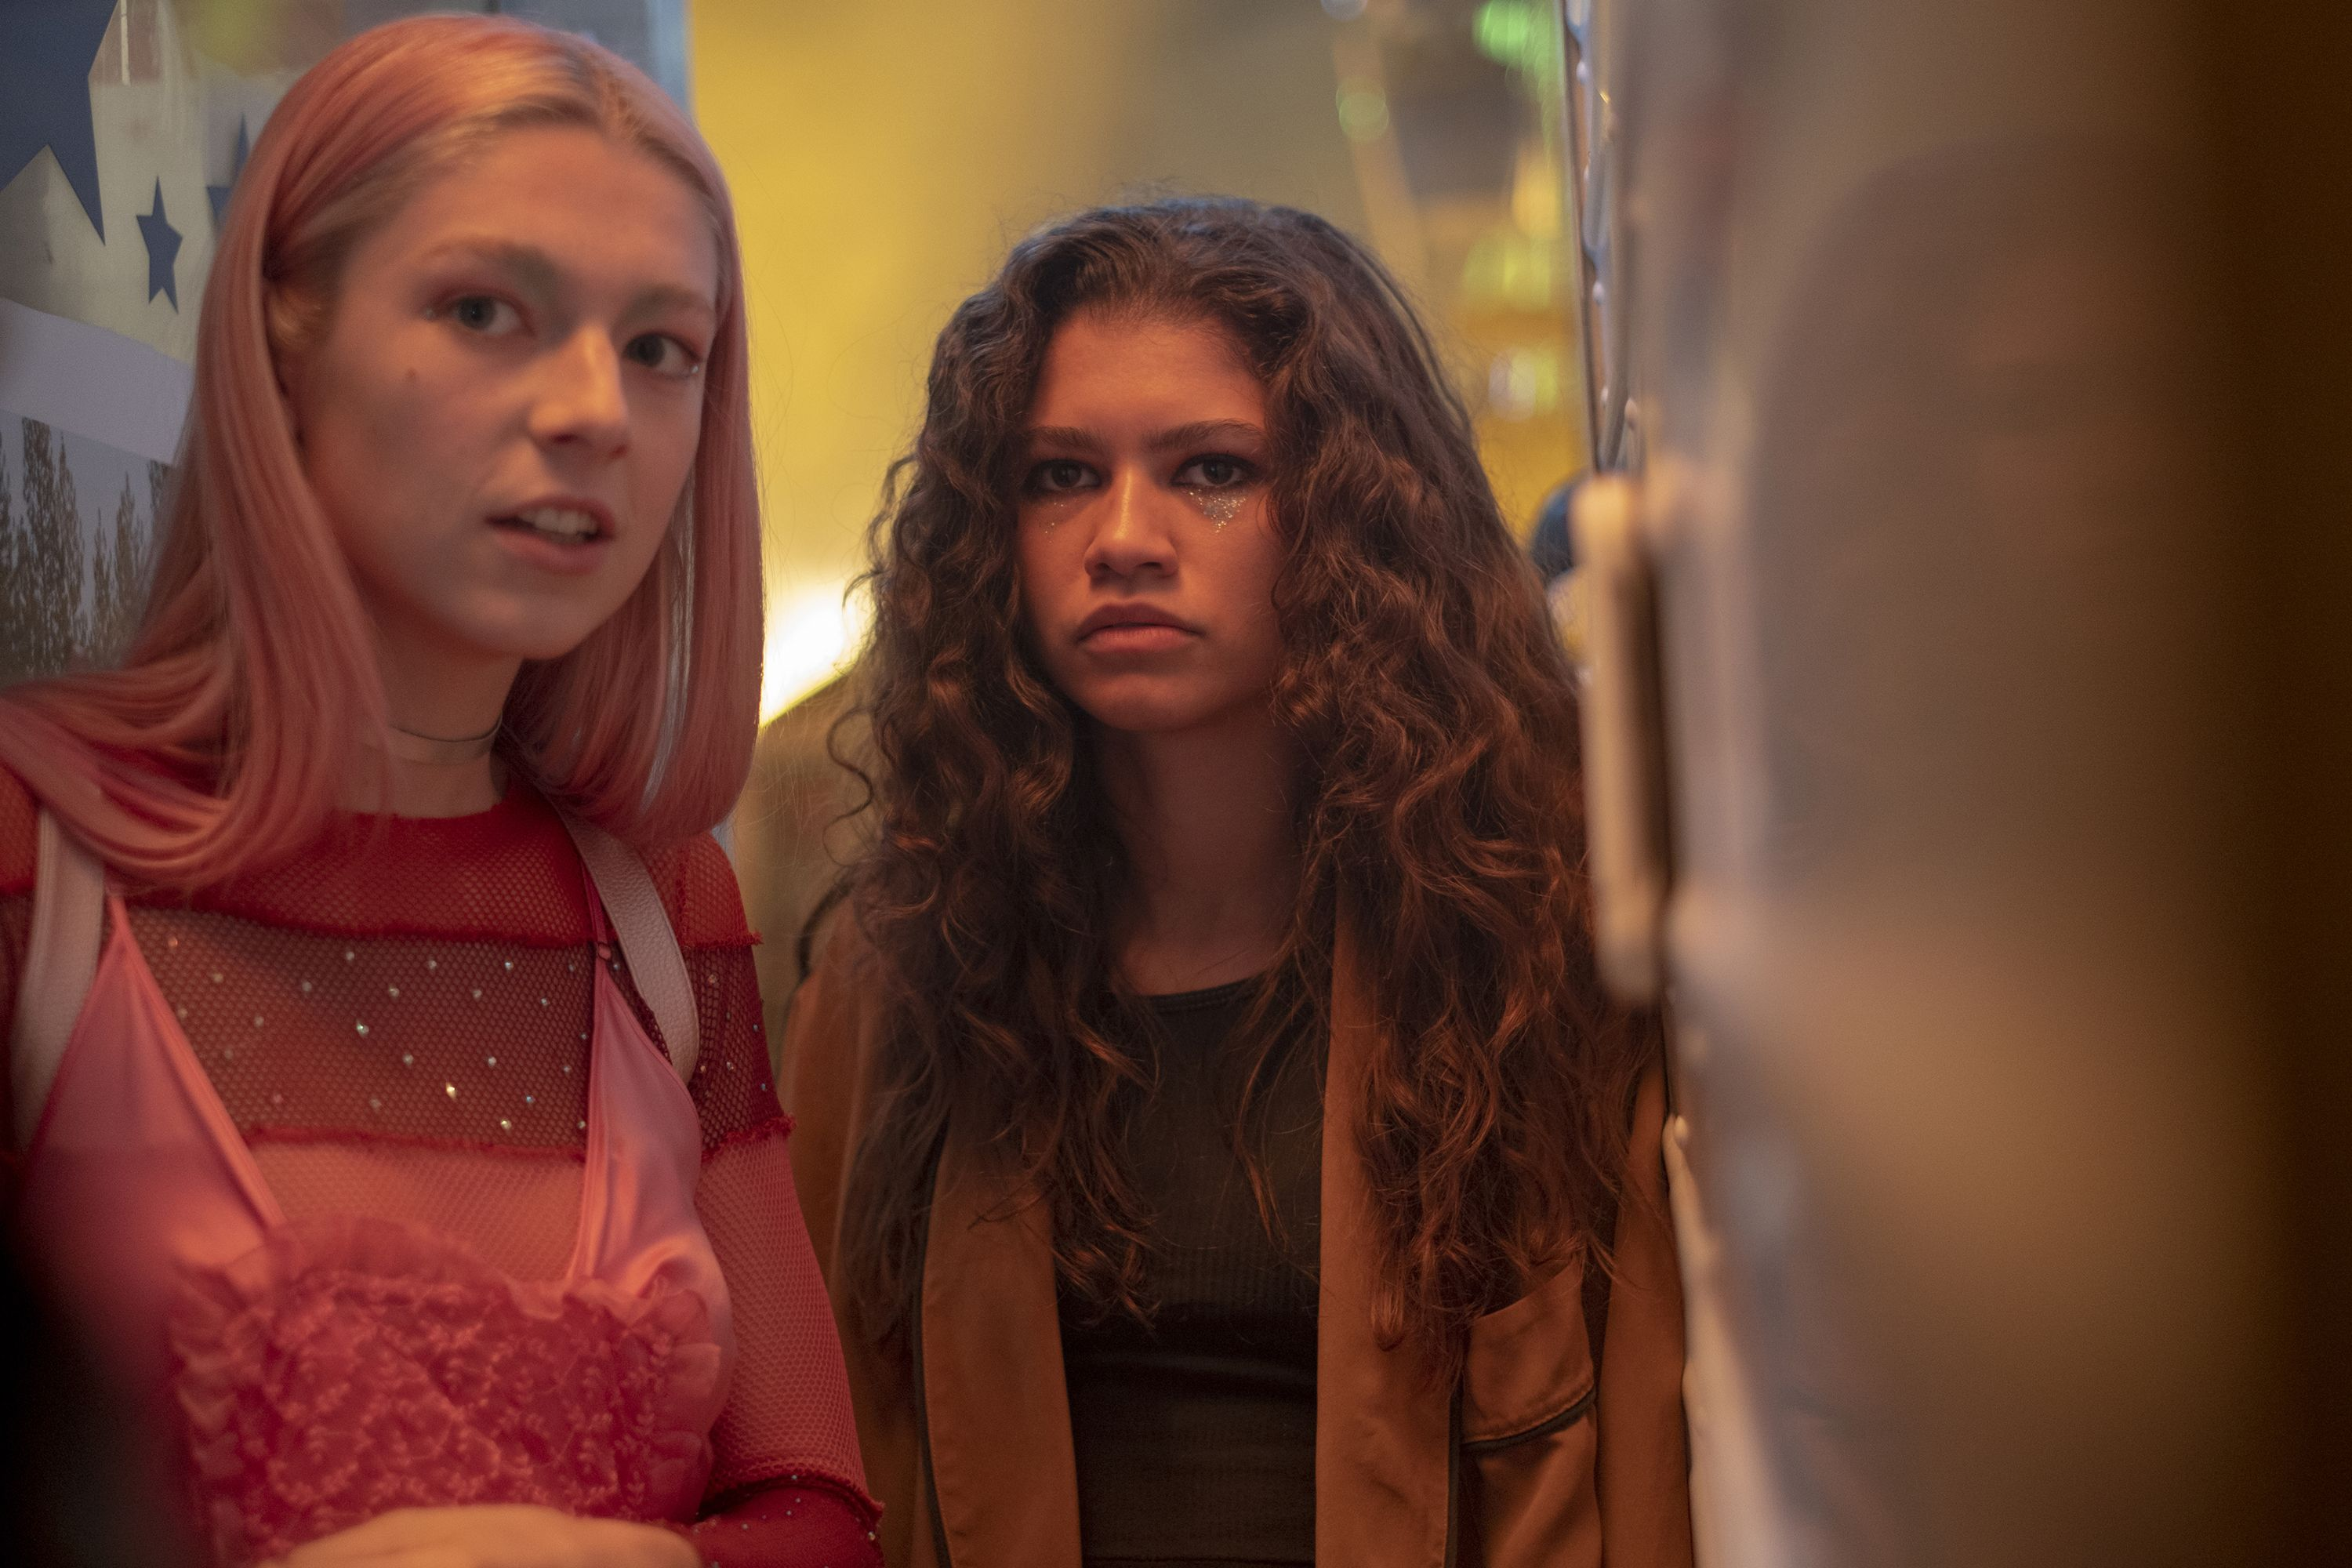 Euphoria Season 2 Guide to Release Date, Cast News, and Spoilers